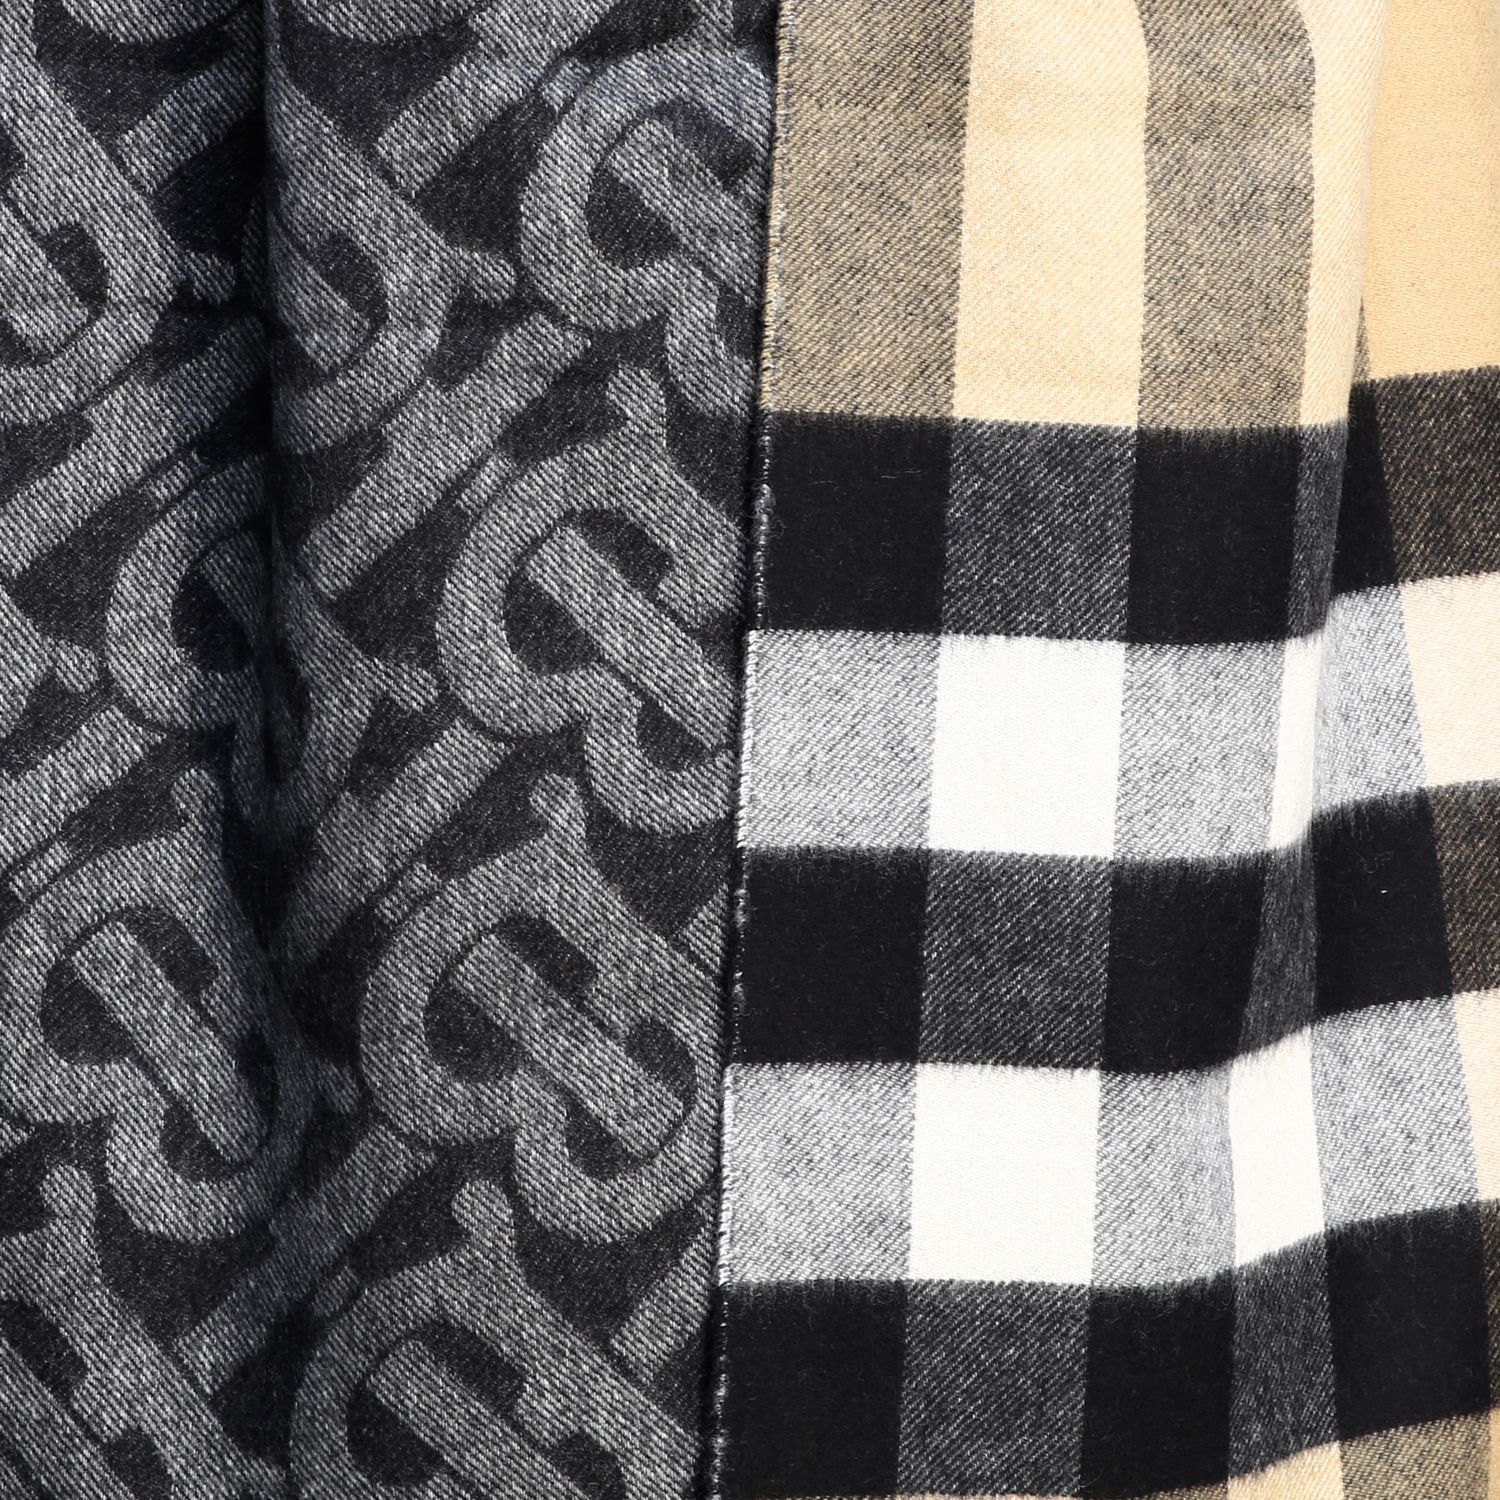 Burberry double-sided cashmere scarf with TB logo and check motif beige 3